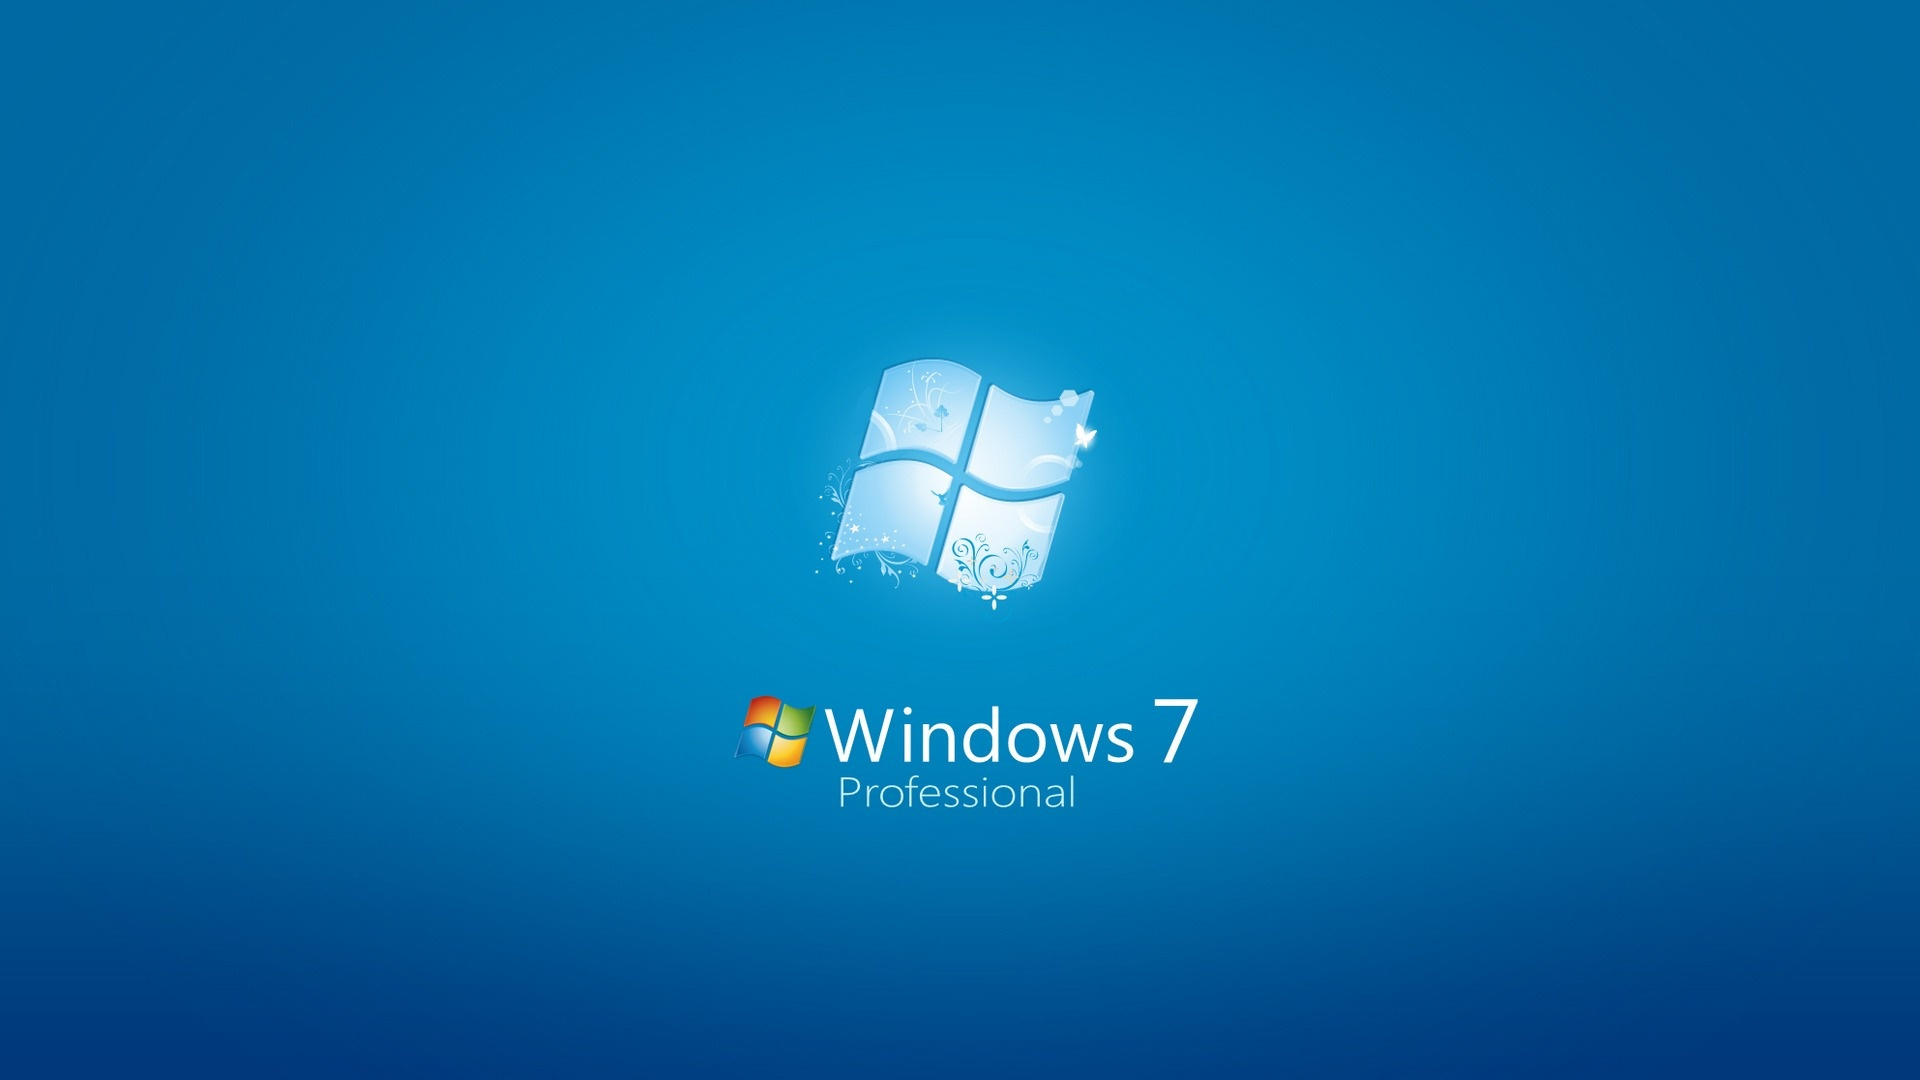 Windows 7 and 8.1 To Be Discontinued Next Year